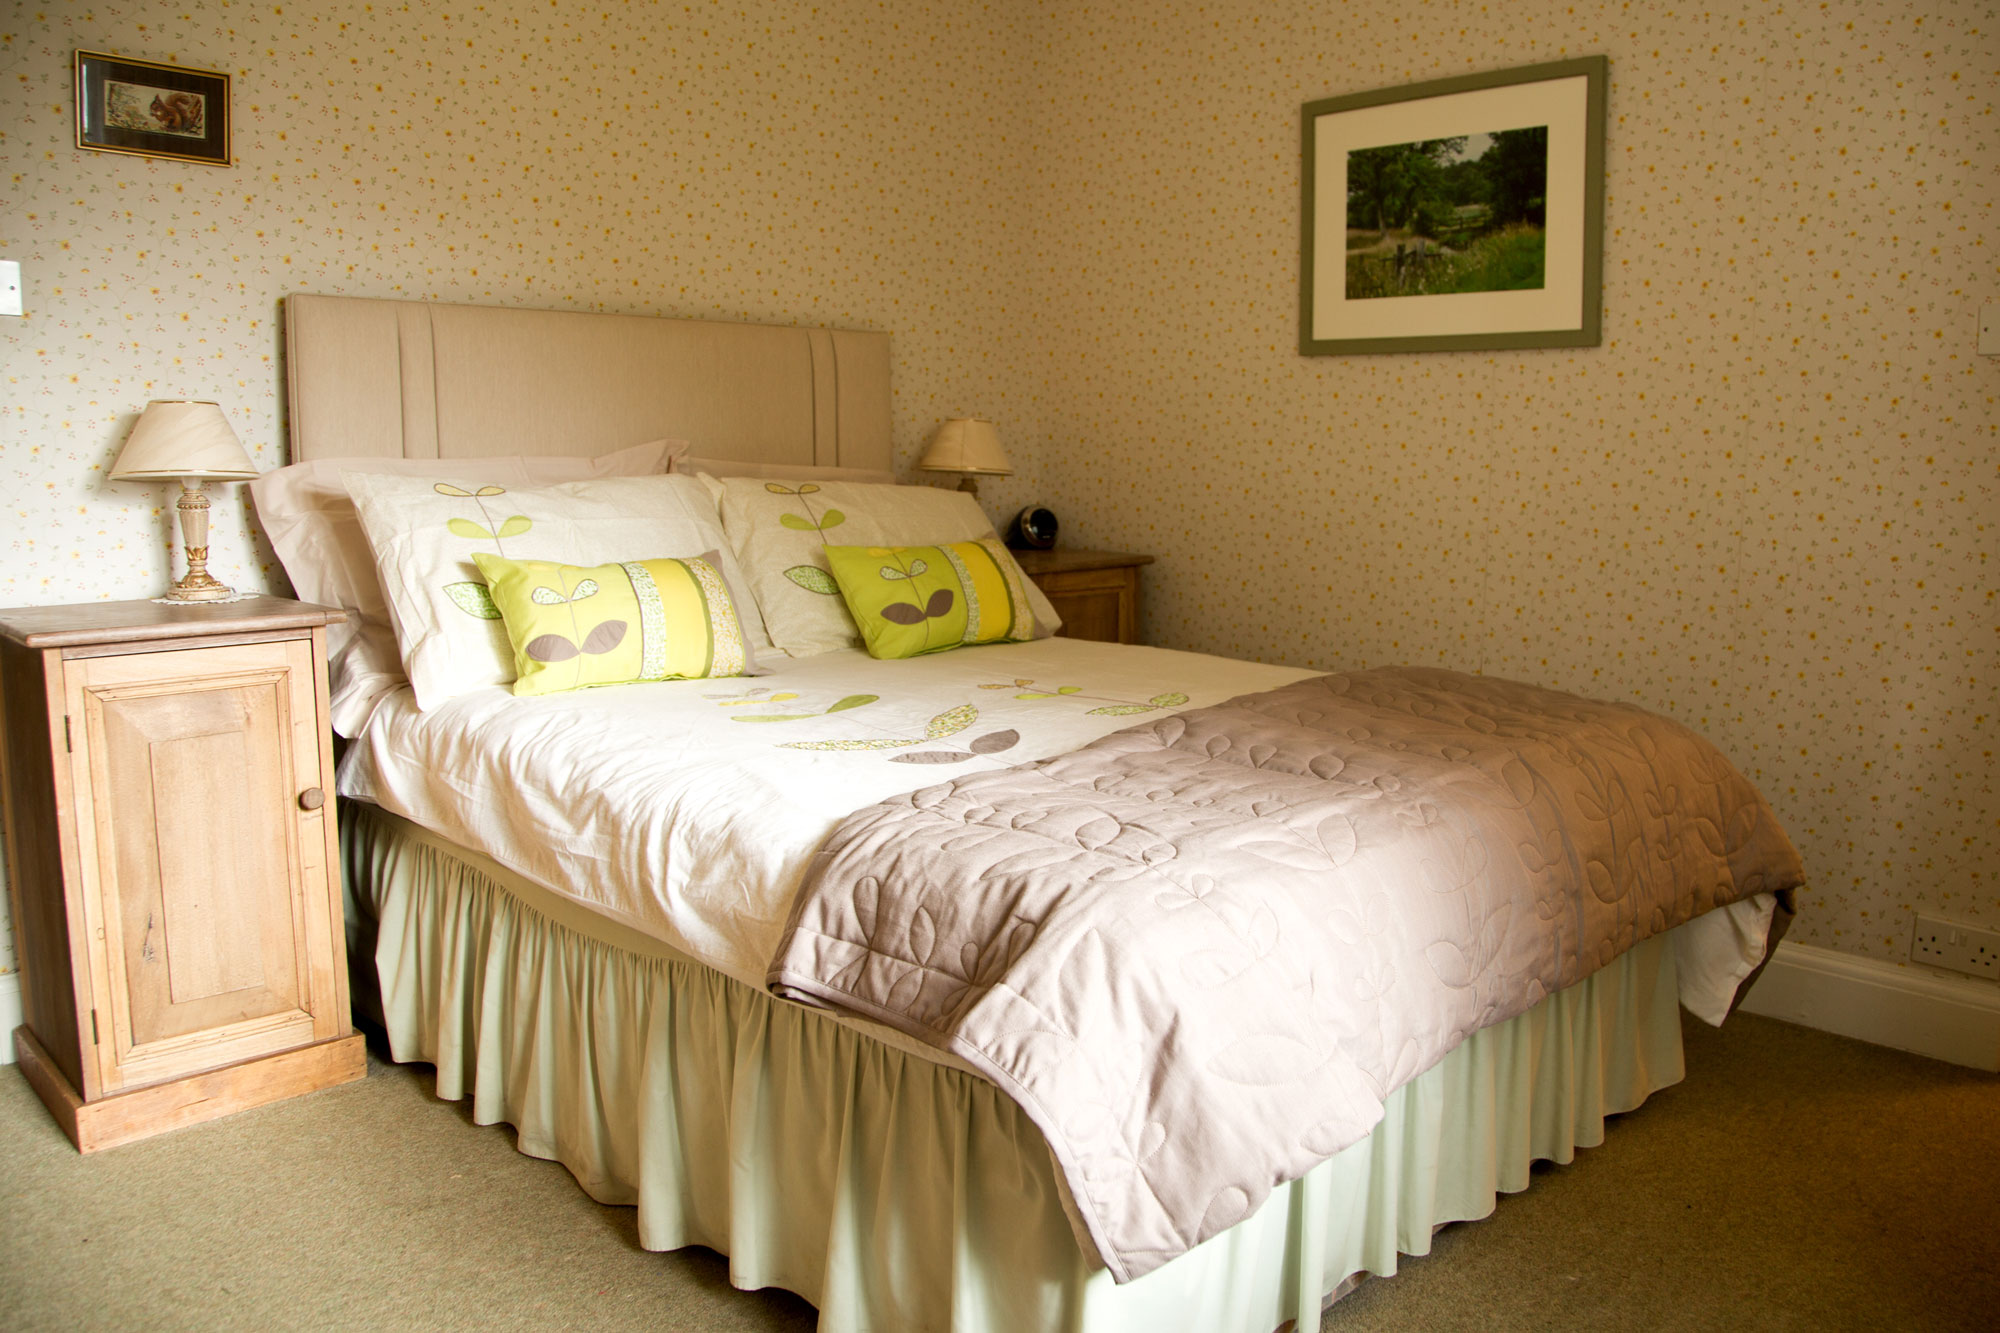 Betty Fold Self Catering Holidays in the Lake District